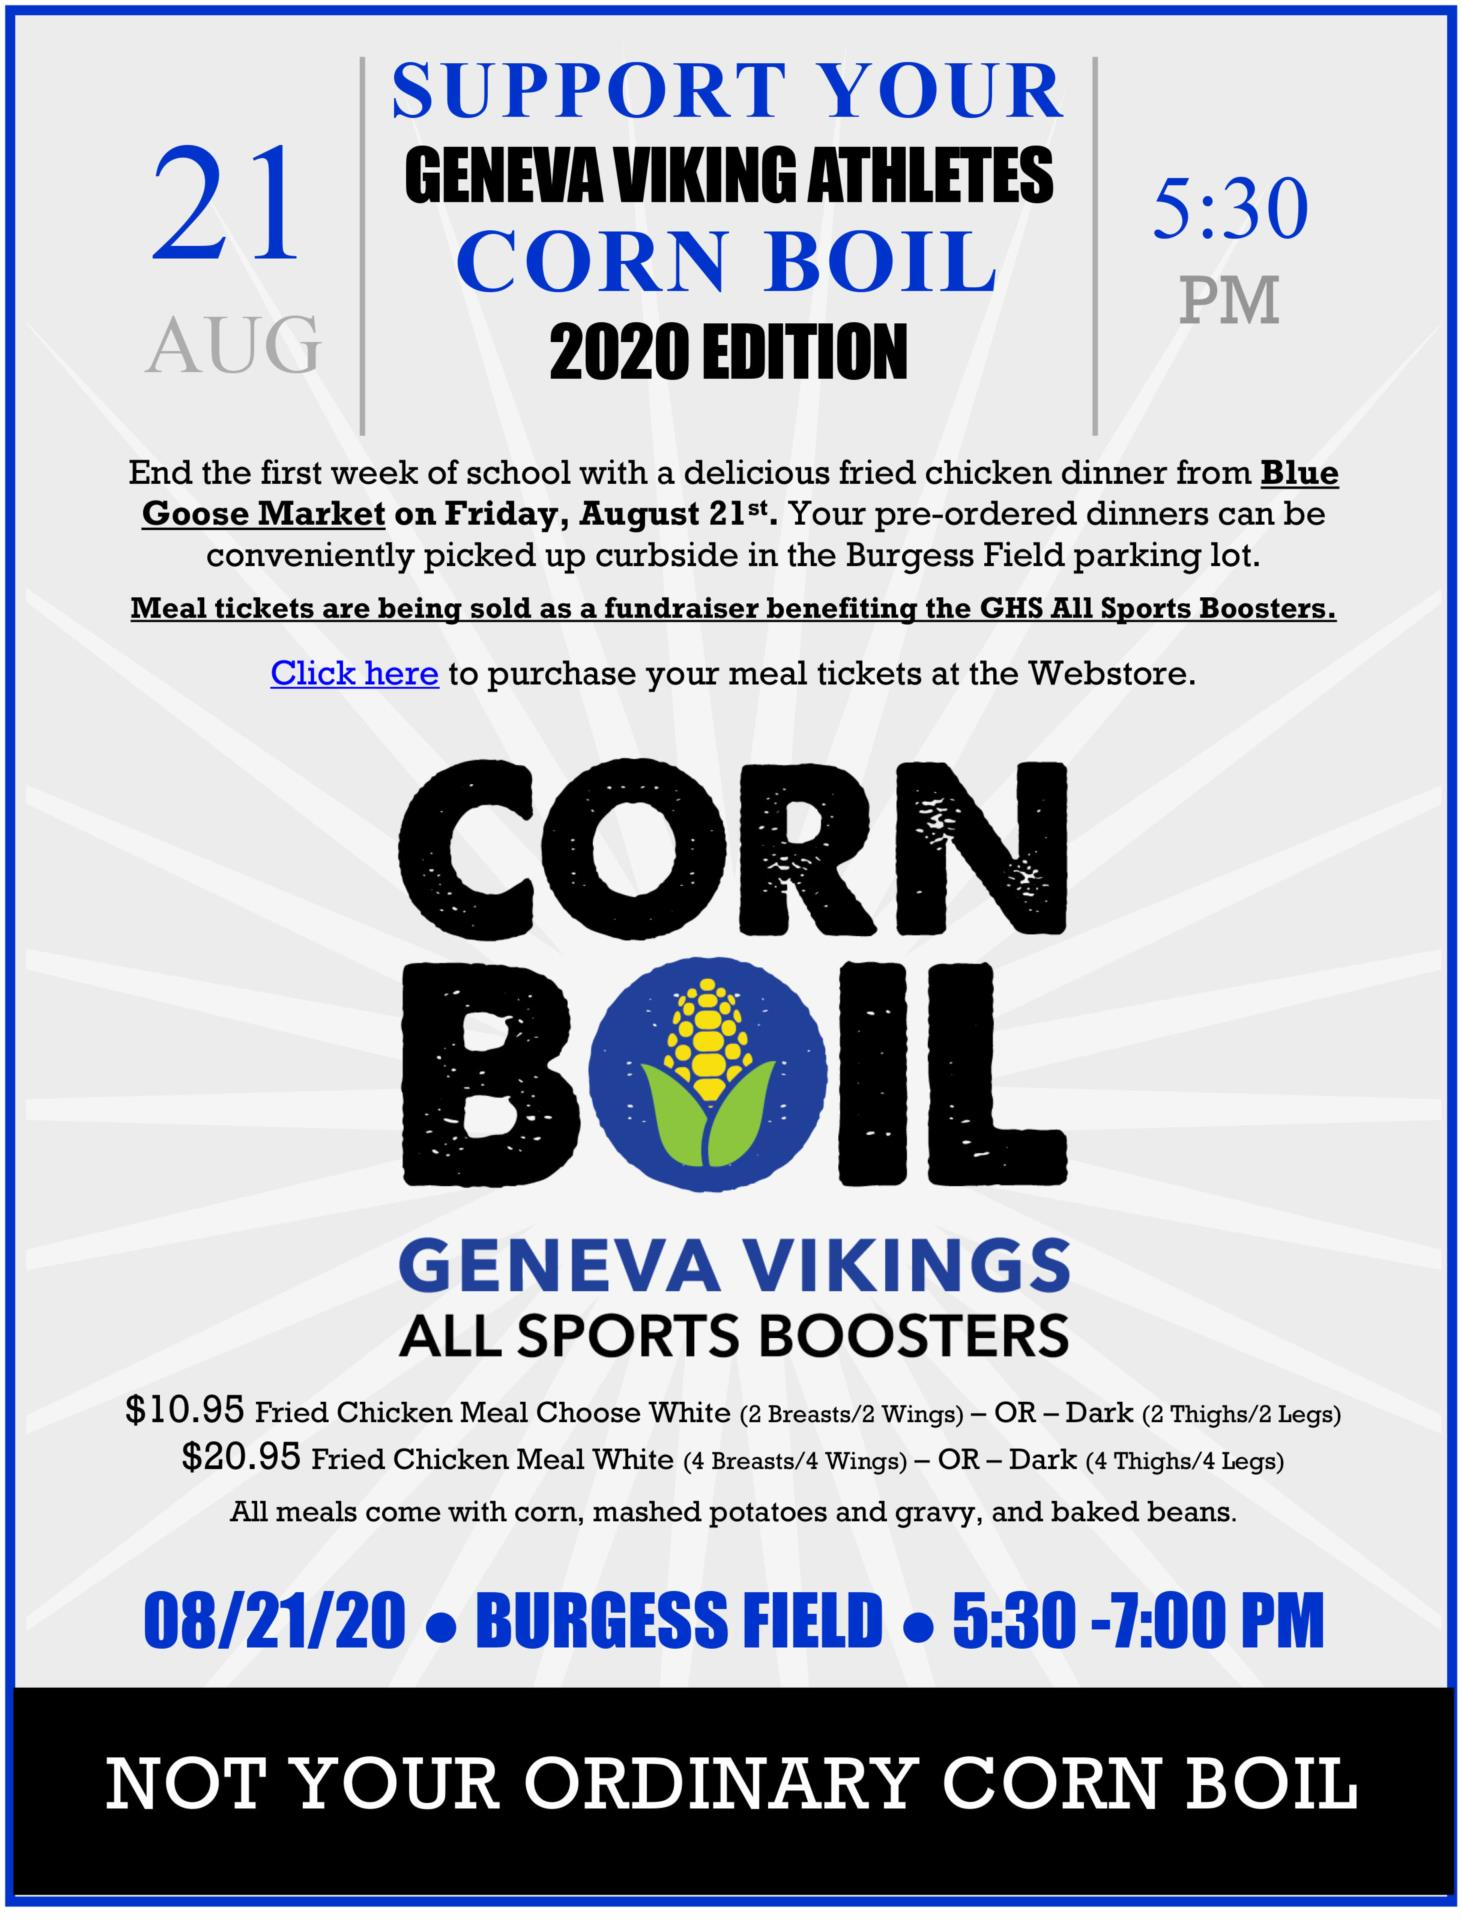 GHS Corn Boil 2020 - 8/21/2020 - Burgess Field - 5:30 pm to 7:00 pm